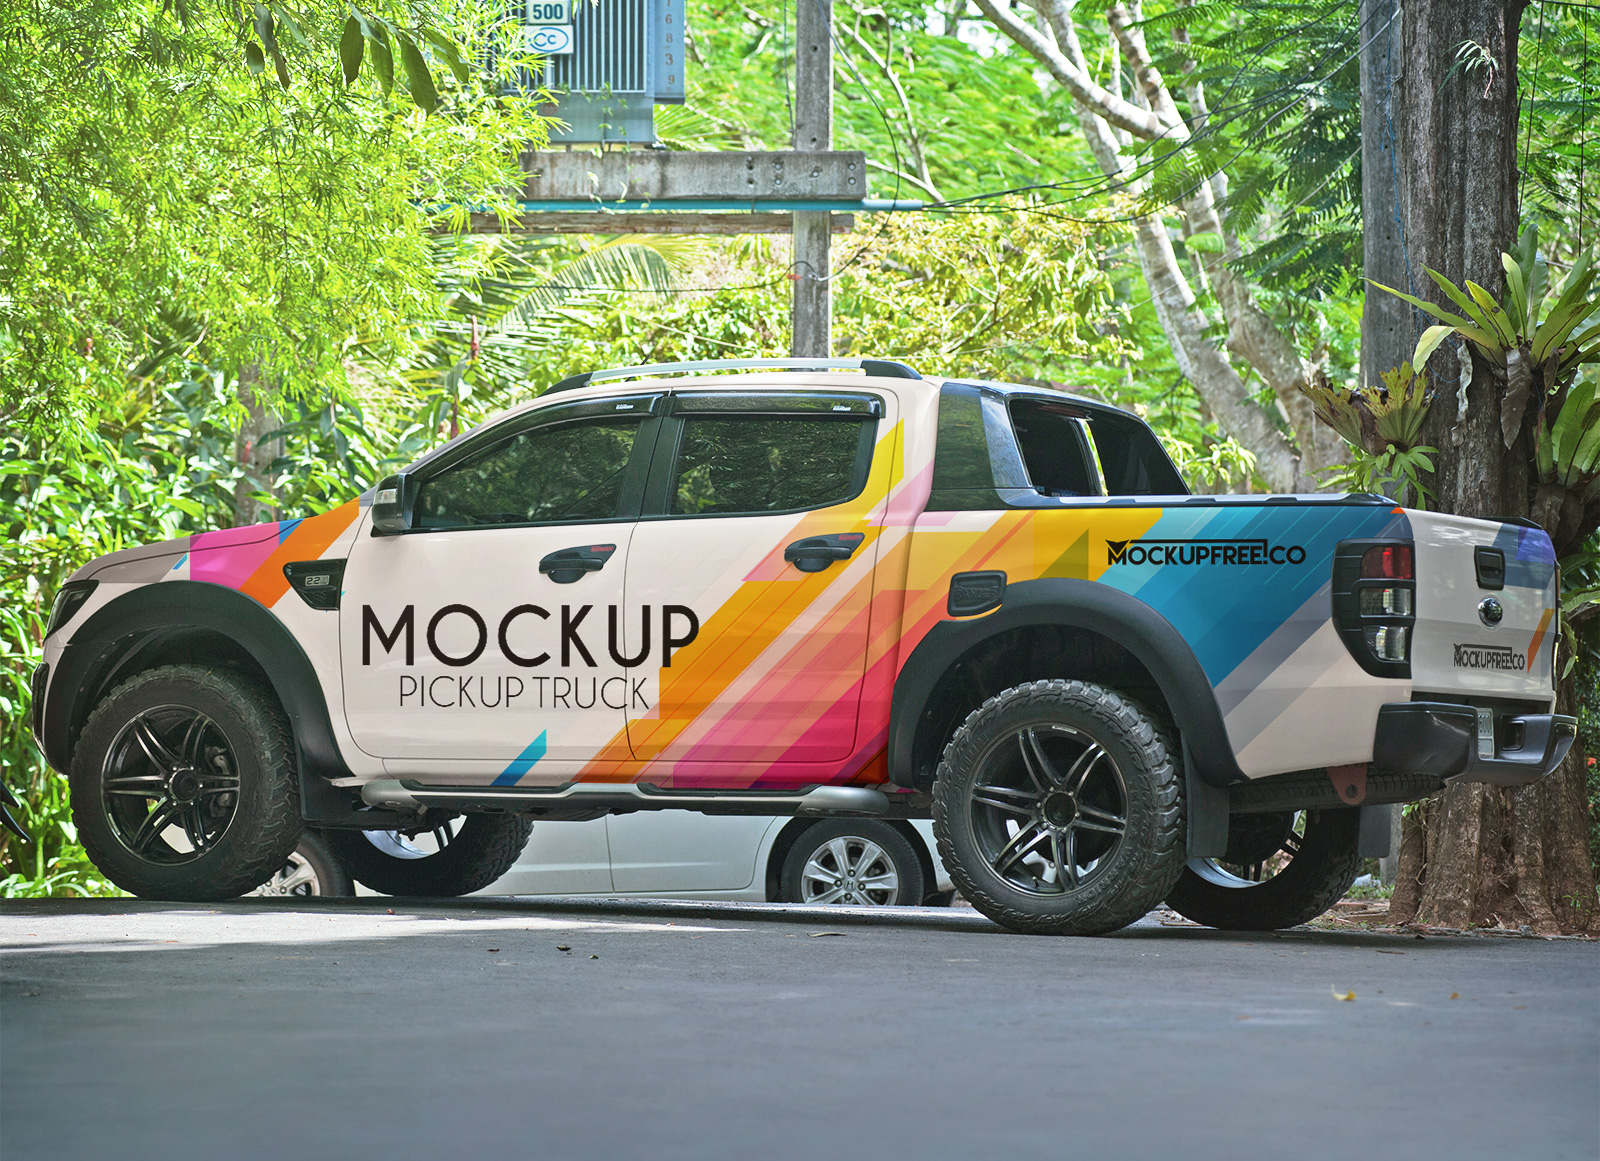 Free-Vehicle-Branding-Pickup-Truck-Mockup-PSD-2